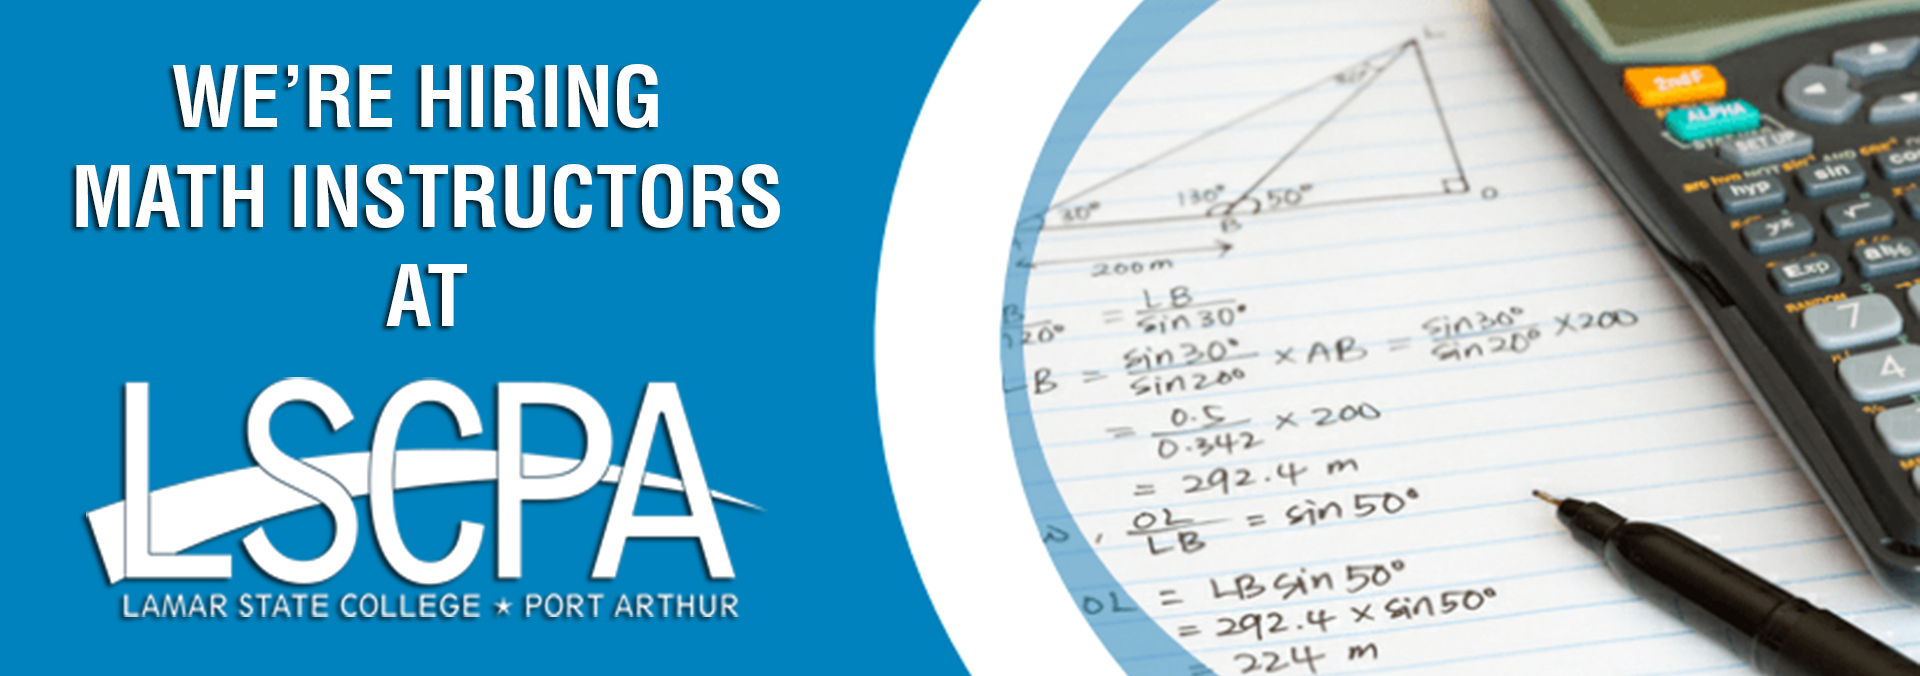 We're Looking for Math Instructors!